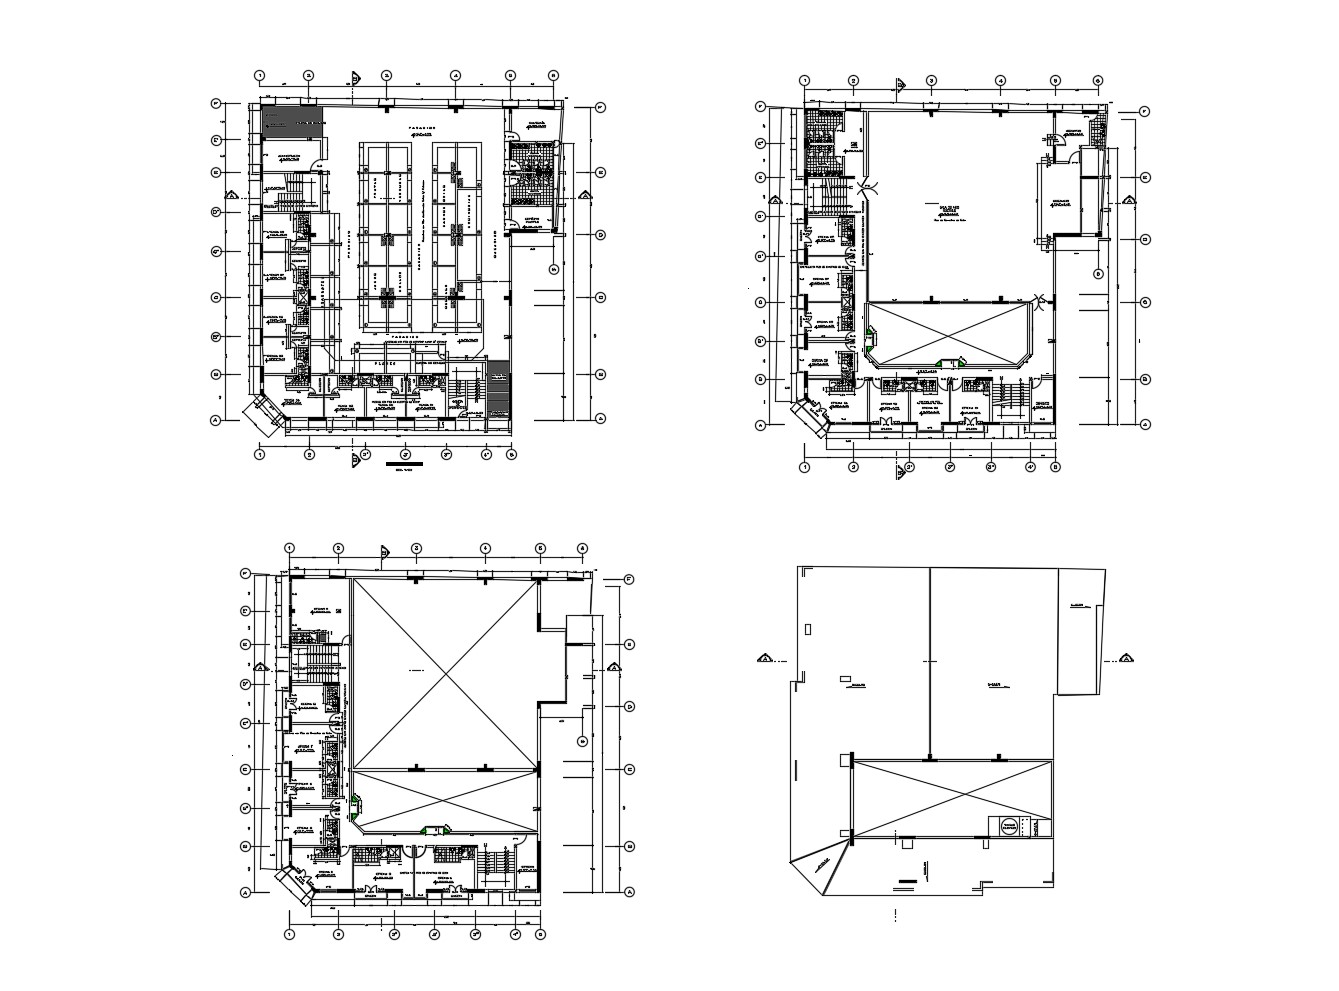 Architectural plan of office building with detail